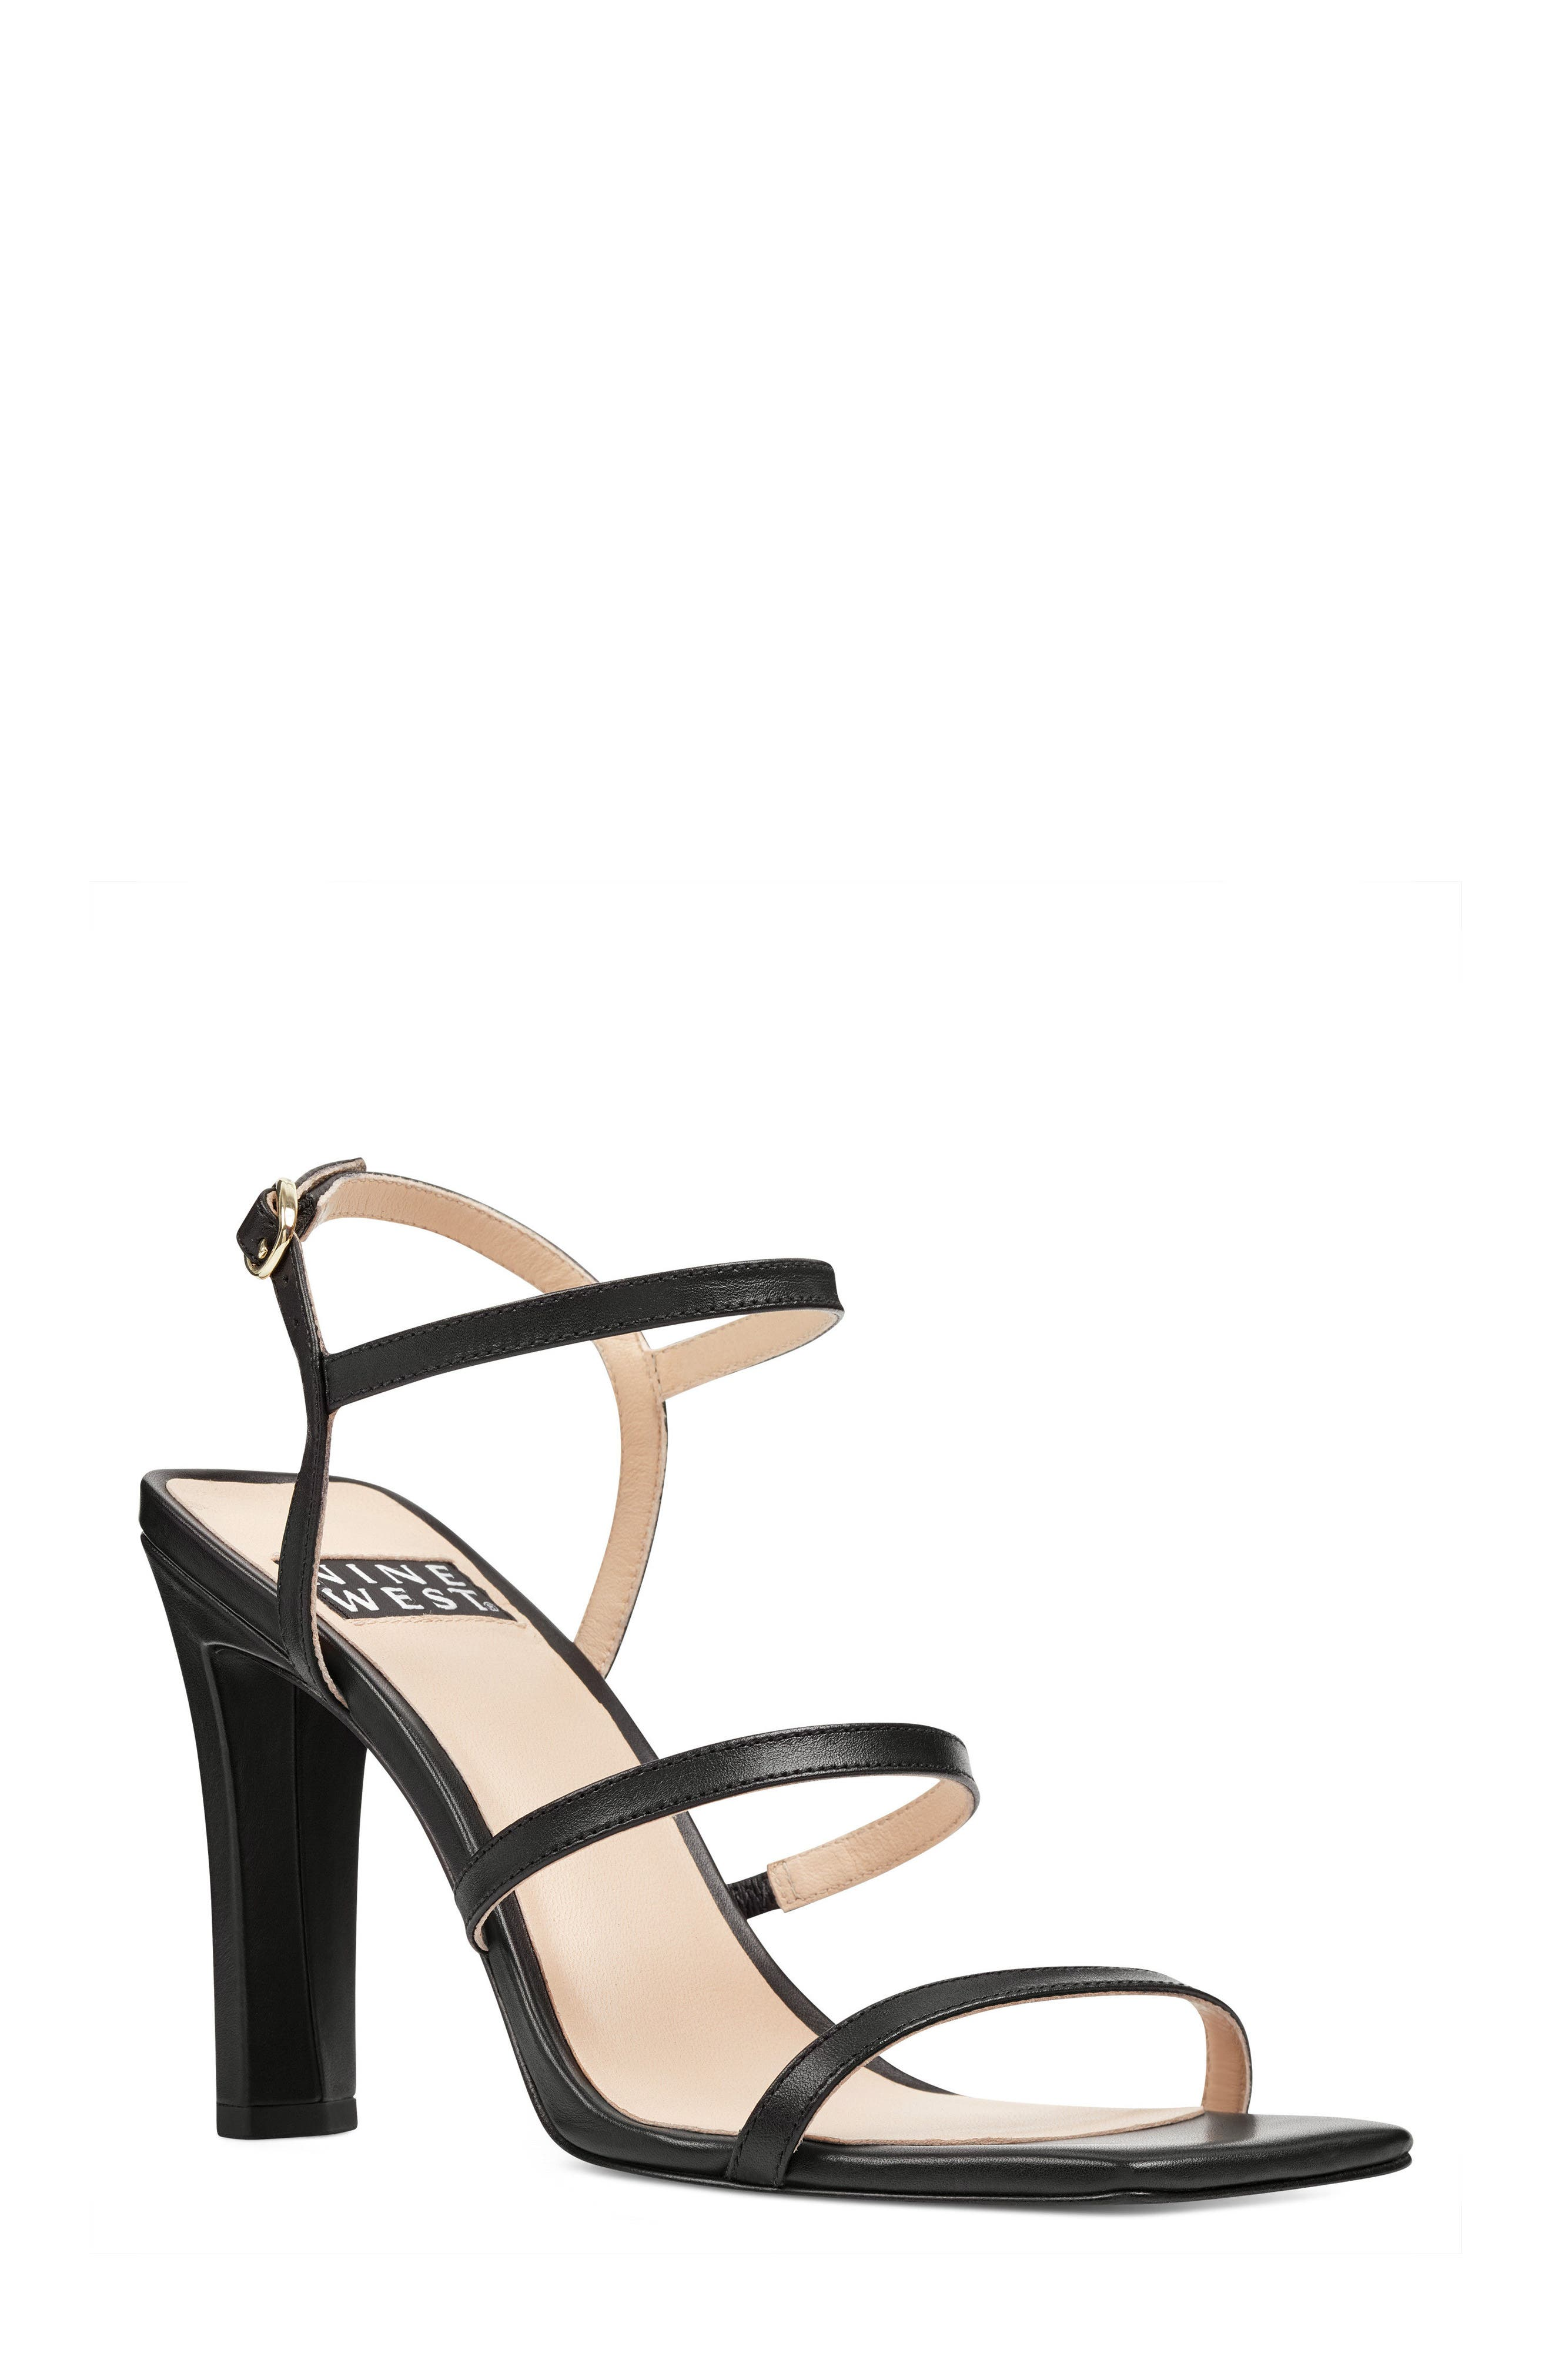 Gabelle - 40th Anniversary Capsule Collection Sandal,                         Main,                         color, BLACK LEATHER